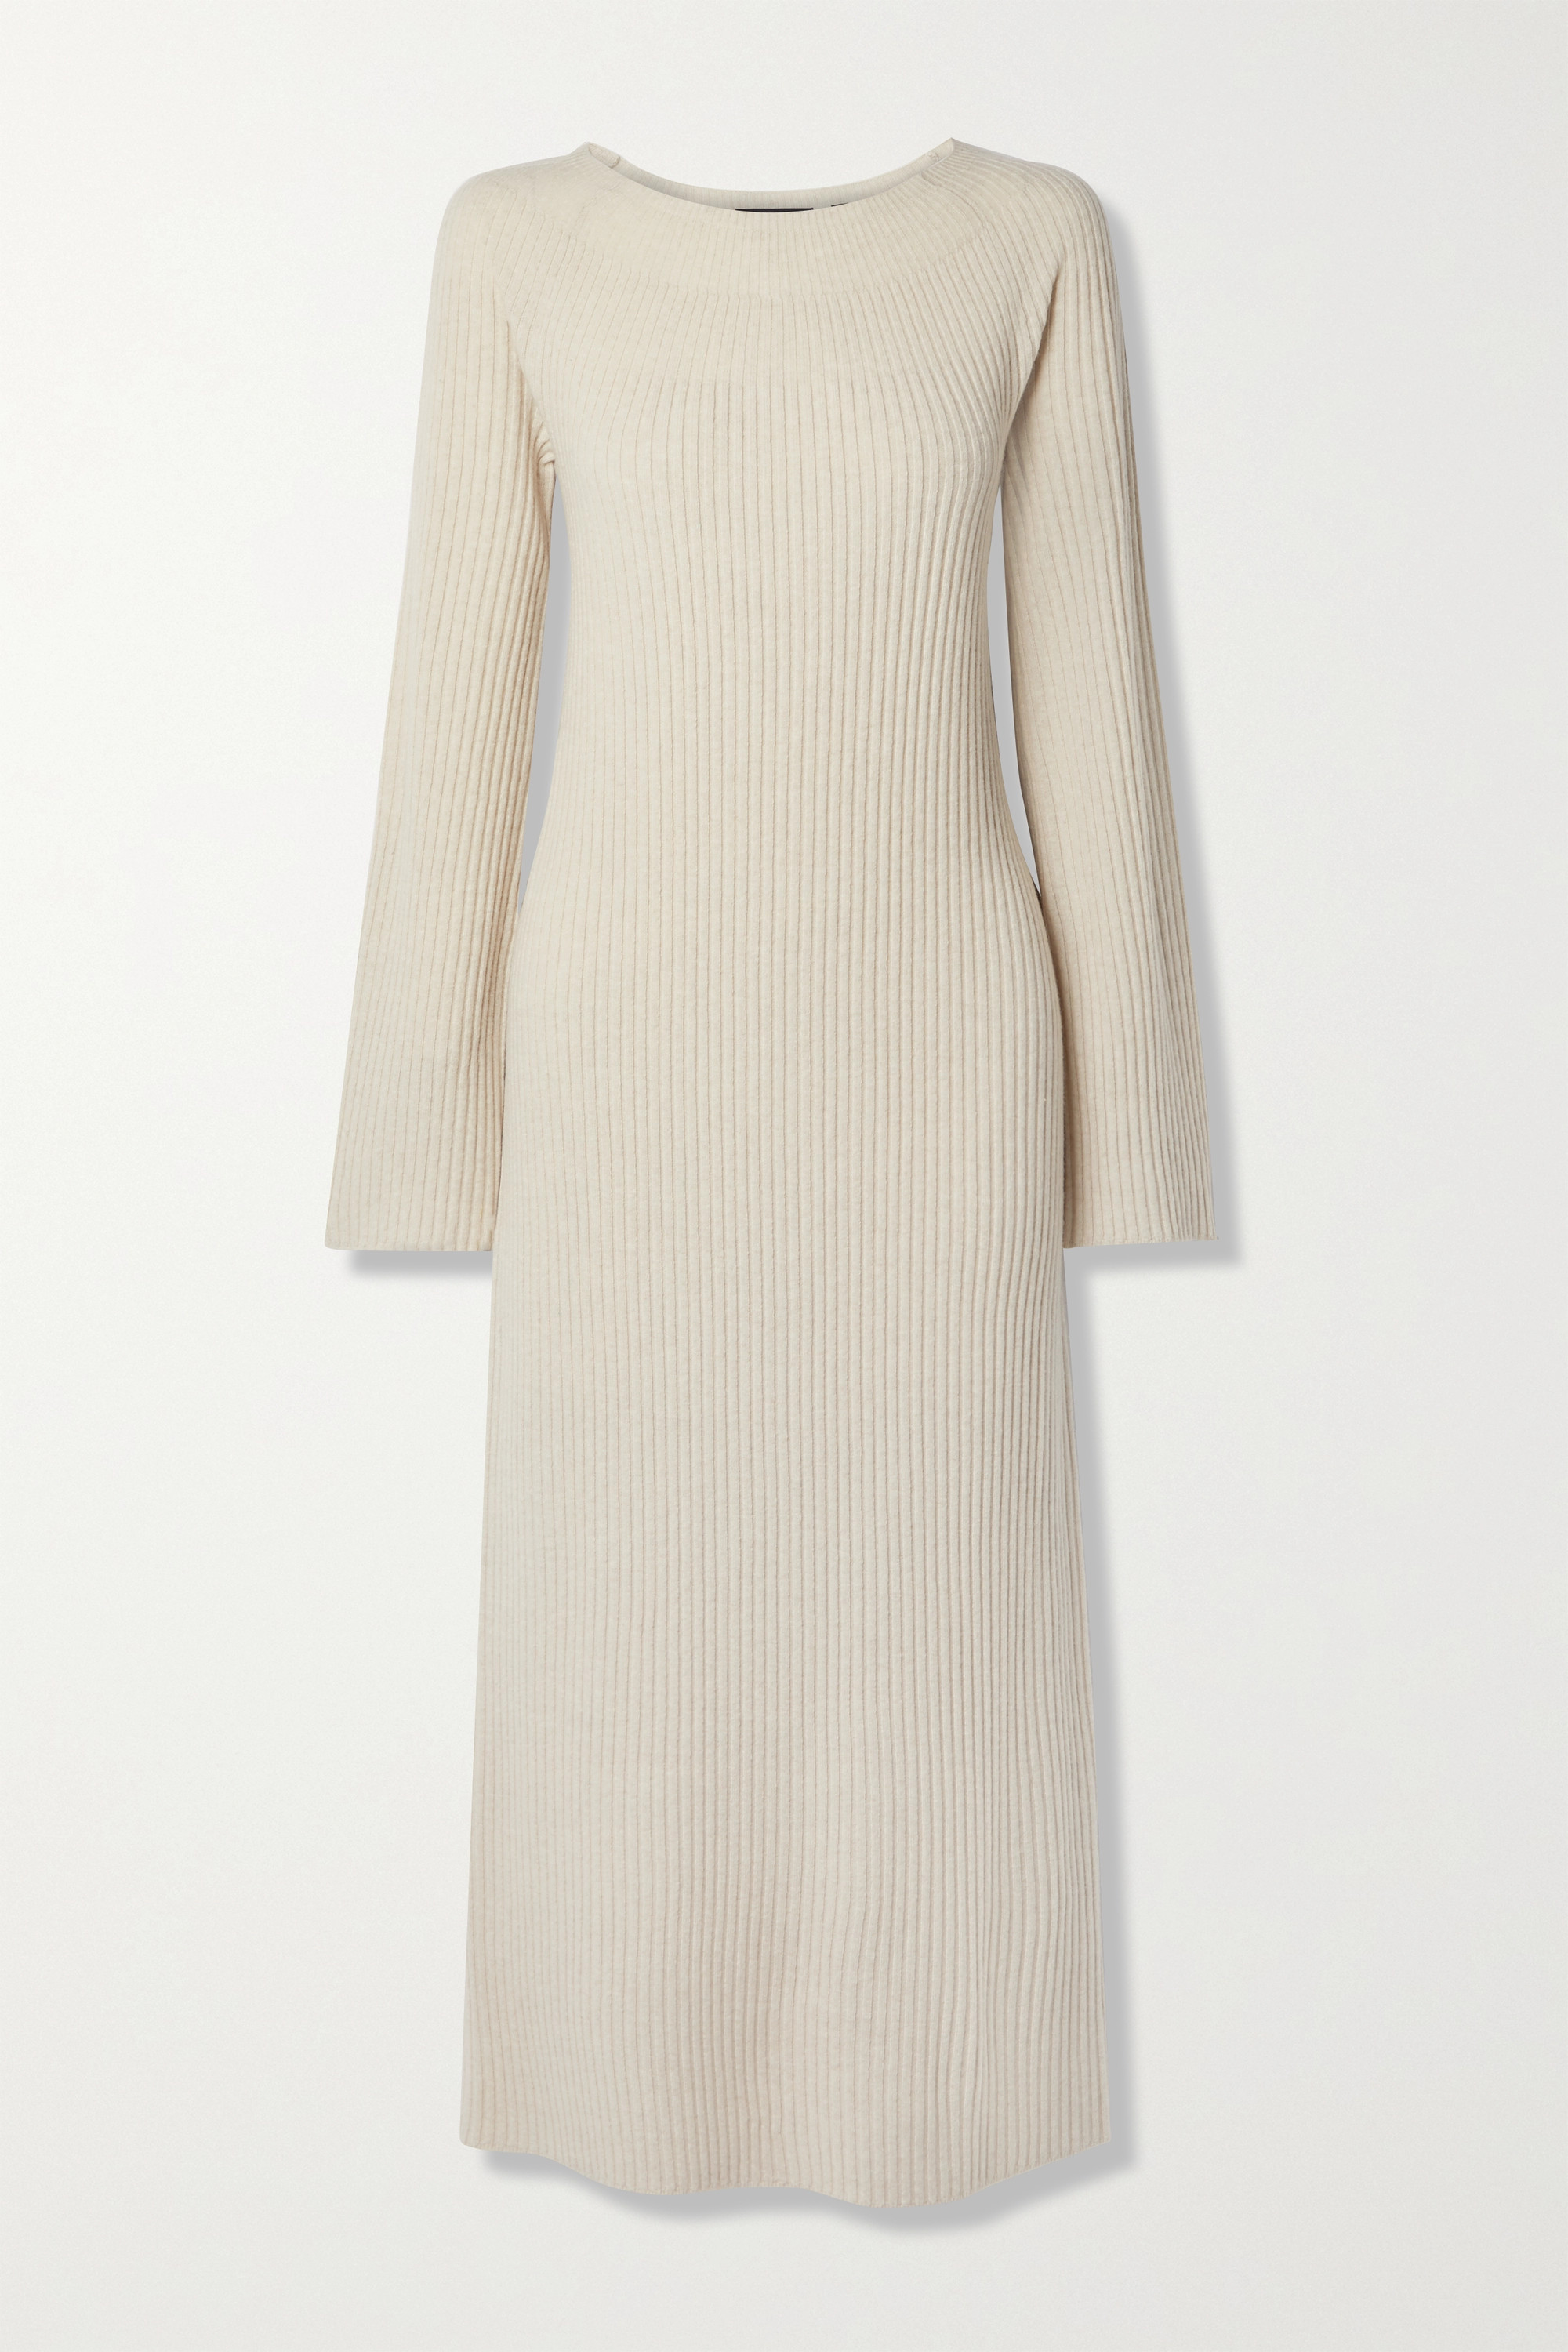 Theory Ribbed wool and cashmere-blend midi dress